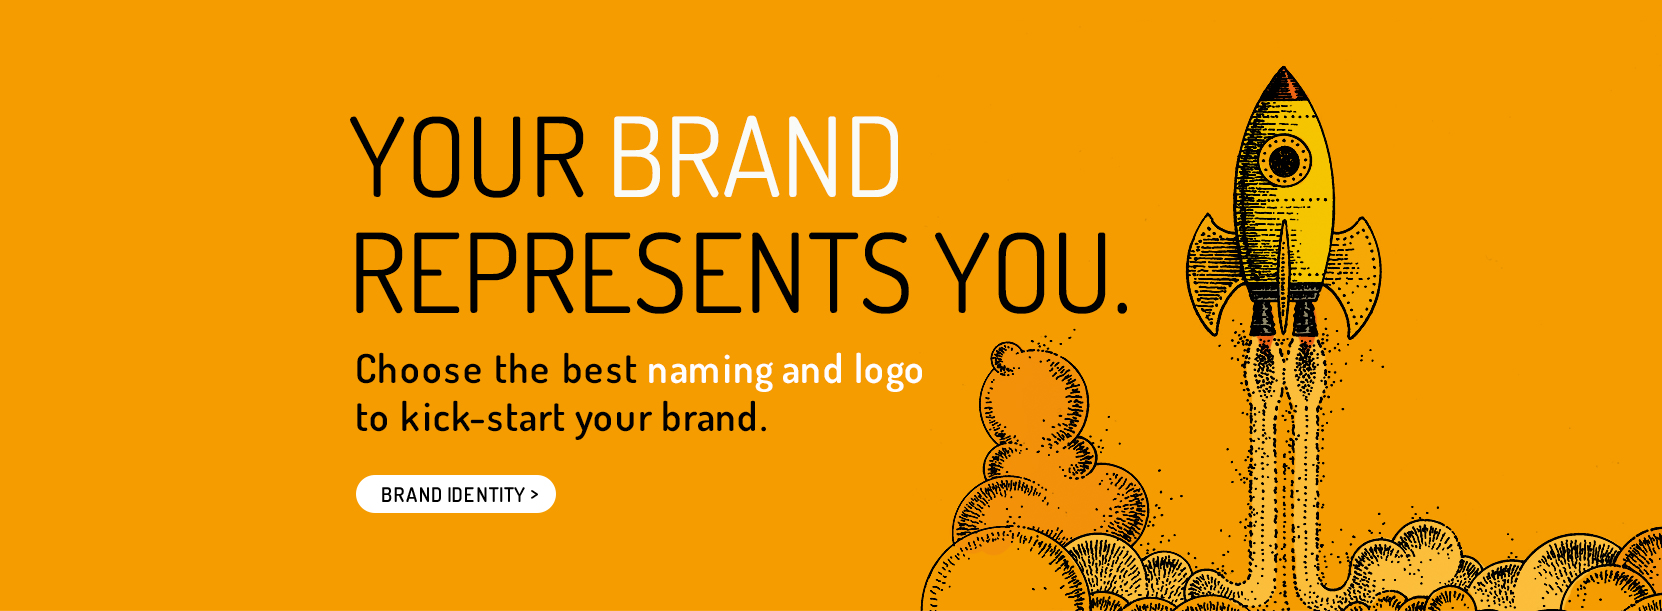 Your brand represents you. Choose the best naming and logo to kick-start your brand.